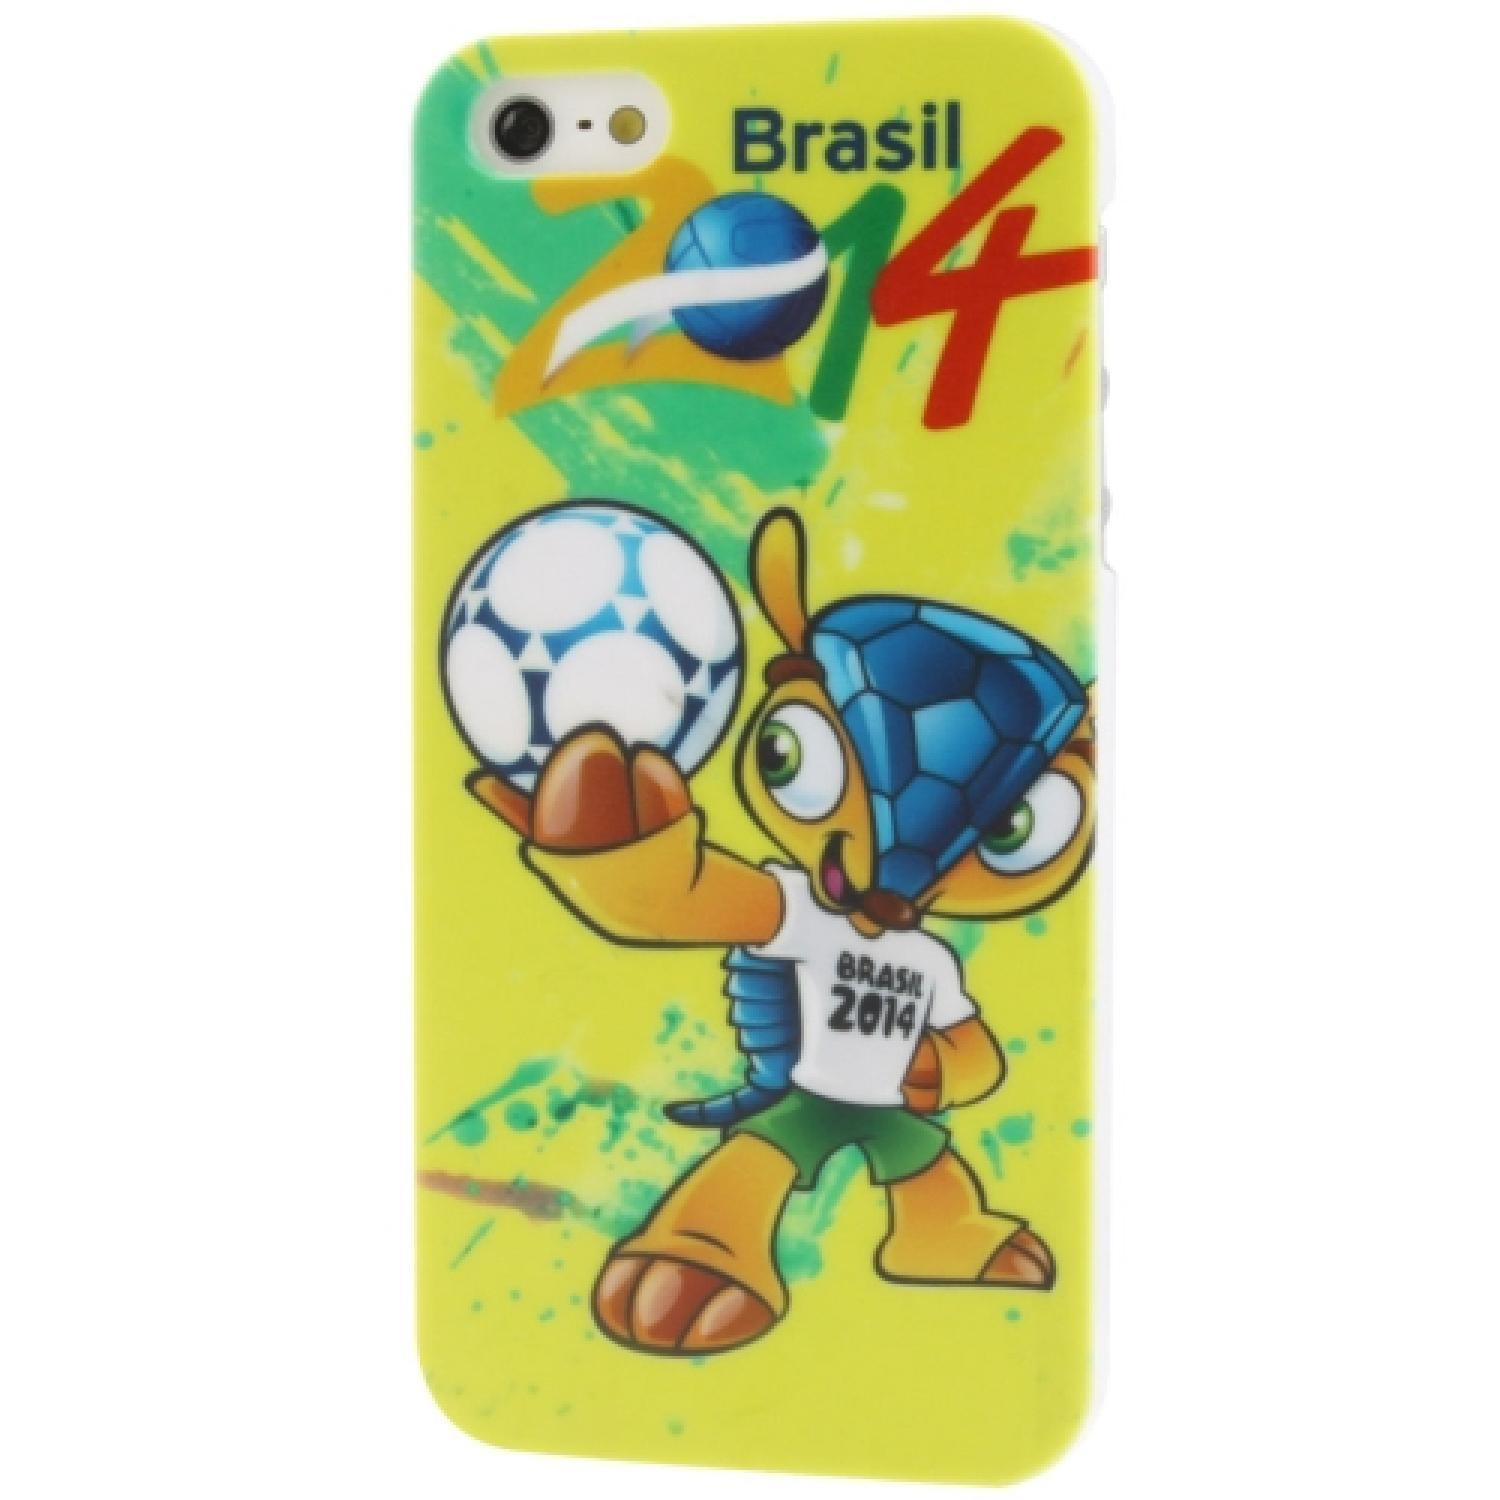 Ultra Slim Plastic Protective Case World Cup Brazil 2014 for iPhone 5/5s/SE Casing HP Murah Terbaru